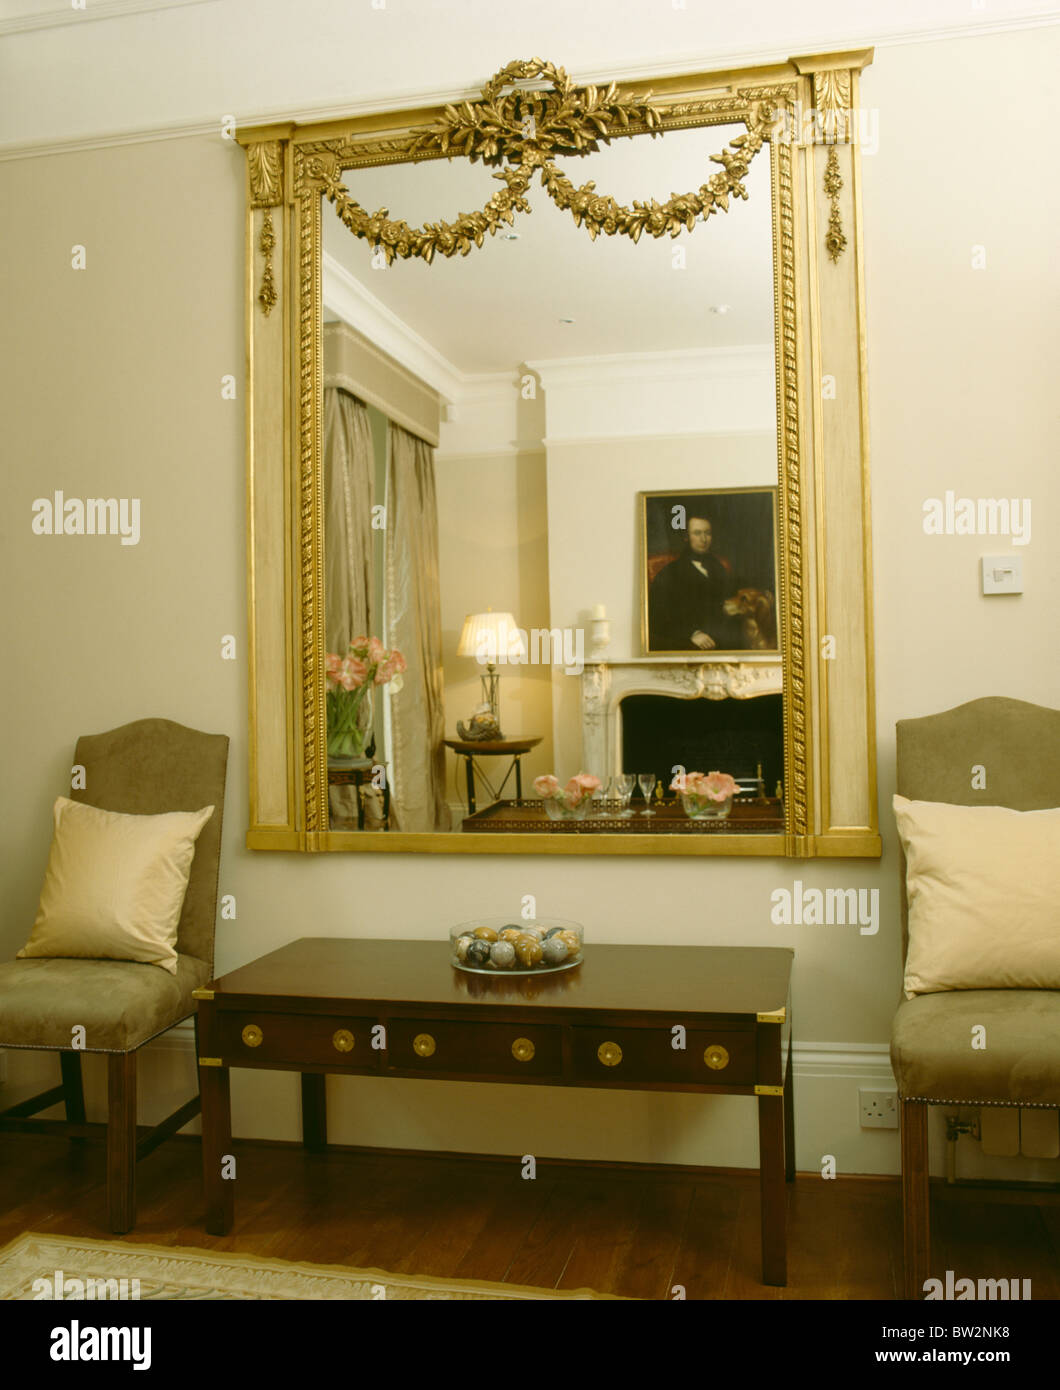 Large ornate gilt antique mirror on wall above console table in ...